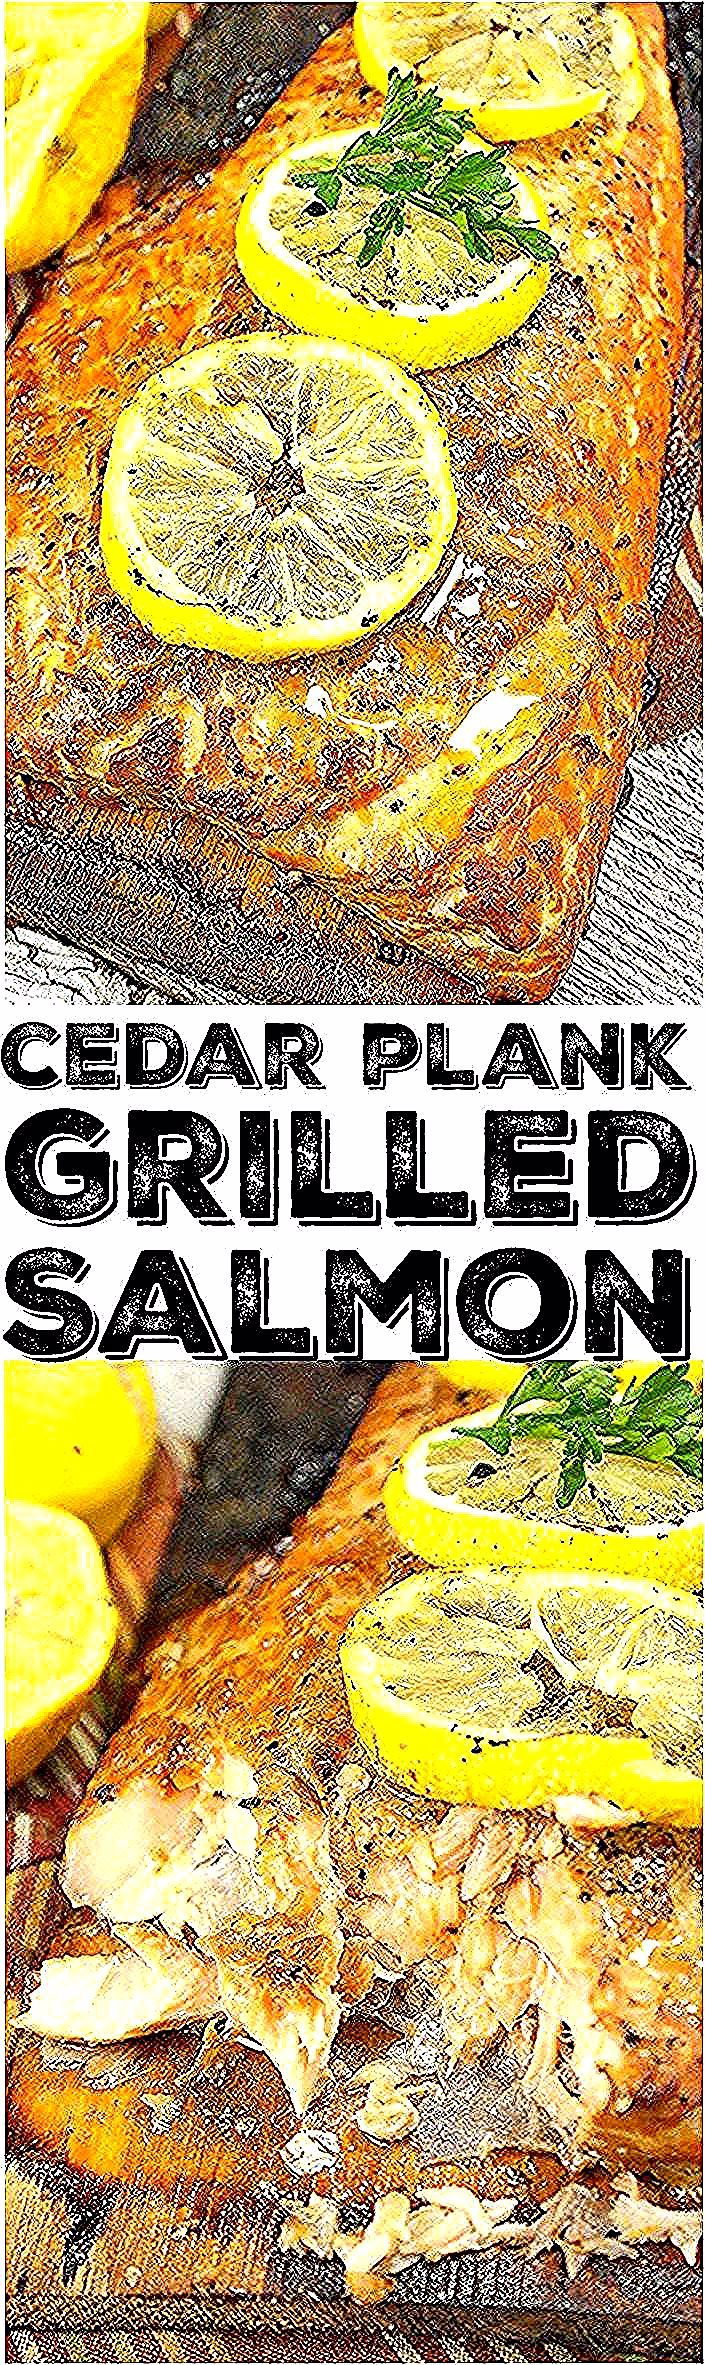 This recipe with grilled salmon from Cedar Plank is simple and adds so much flavor, ..., #adds #Cedar #flavor #freshSeafood #Grilled #grilledSeafood #Plank #recipe #salmon #Seafoodaesthetic #Seafoodappetizers #Seafoodart #Seafoodbake #Seafoodbisque #Seafoodboil #Seafoodbroil #Seafoodbuffet #Seafoodcasserole #Seafoodchowder #Seafoodcrab #Seafooddesign #Seafooddinner #Seafooddip #Seafooddishes...